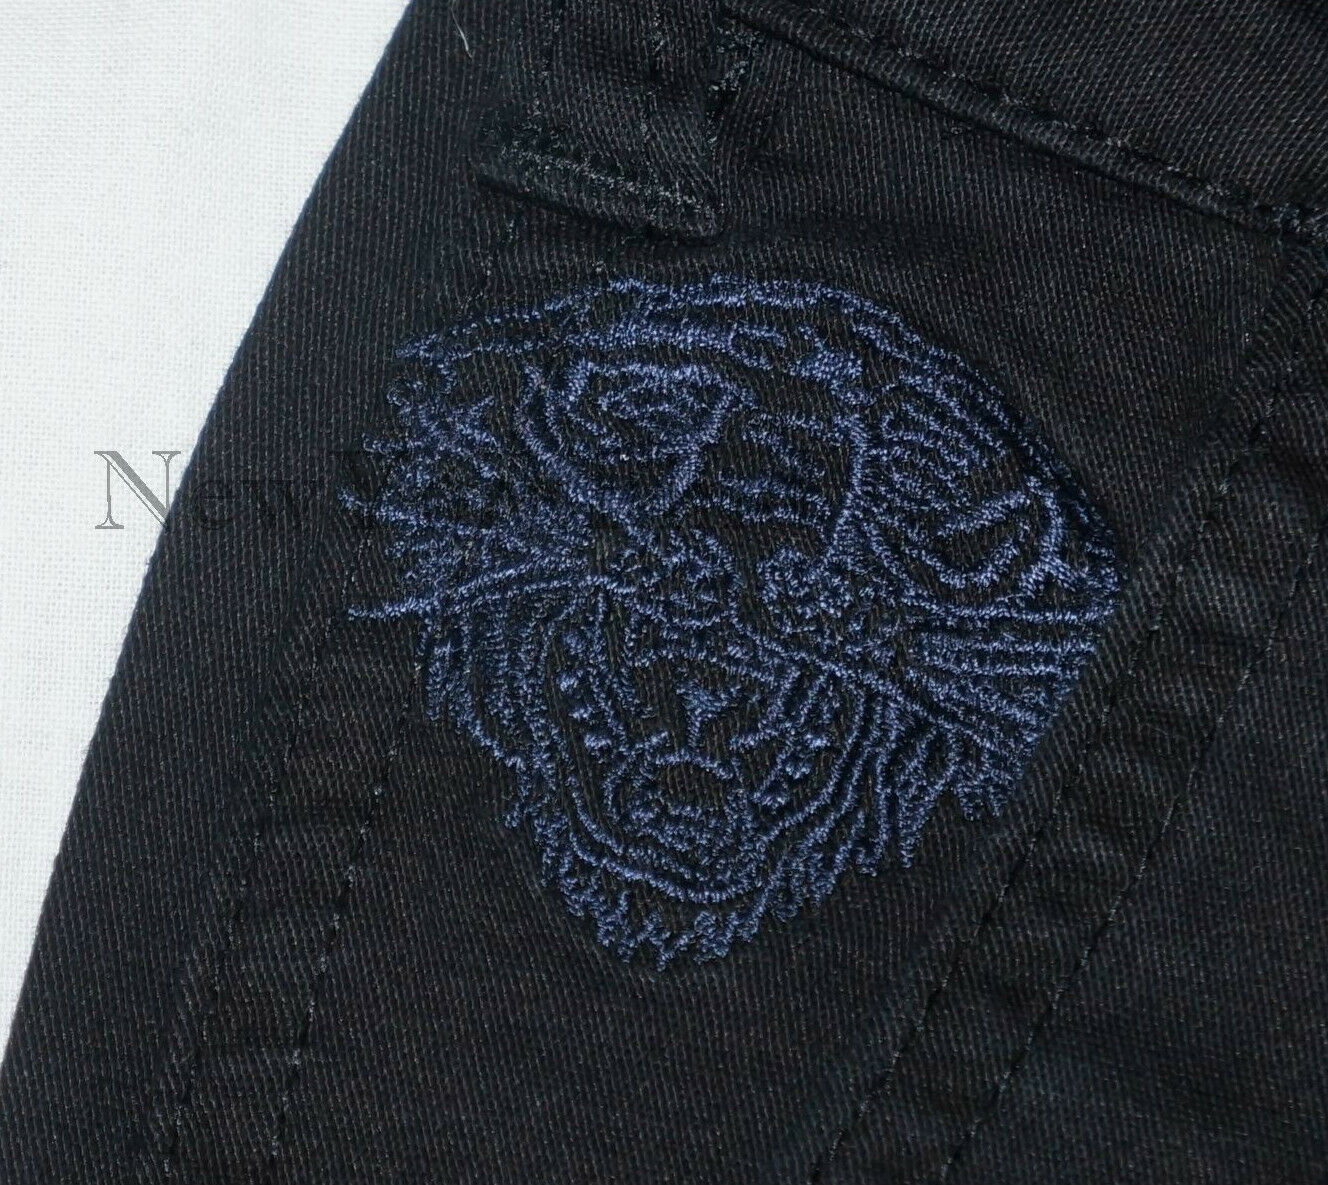 NWT ED HARDY Christian Audigier CARGO Jeans TIGER Embroided SKINNY Tattoo Pants